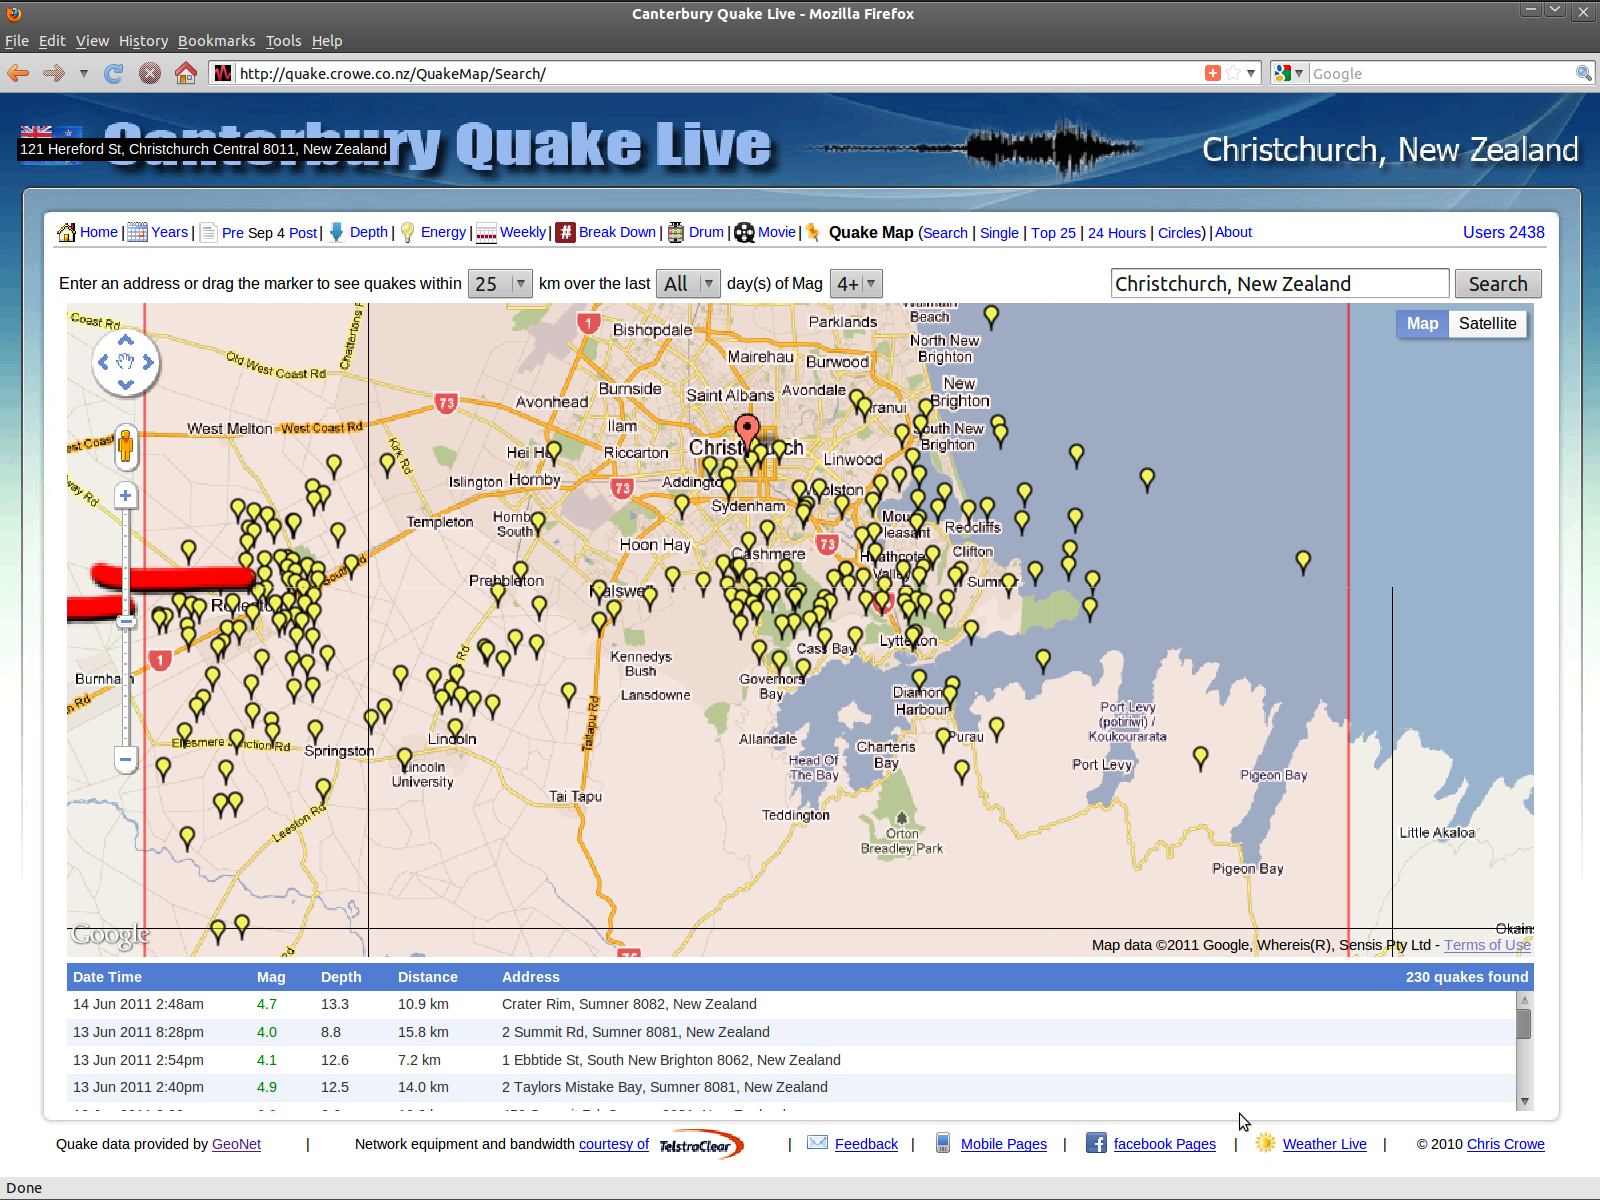 Crowe.co.nz Lyttelton area magnitude 4 & larger earthquakes to 140611